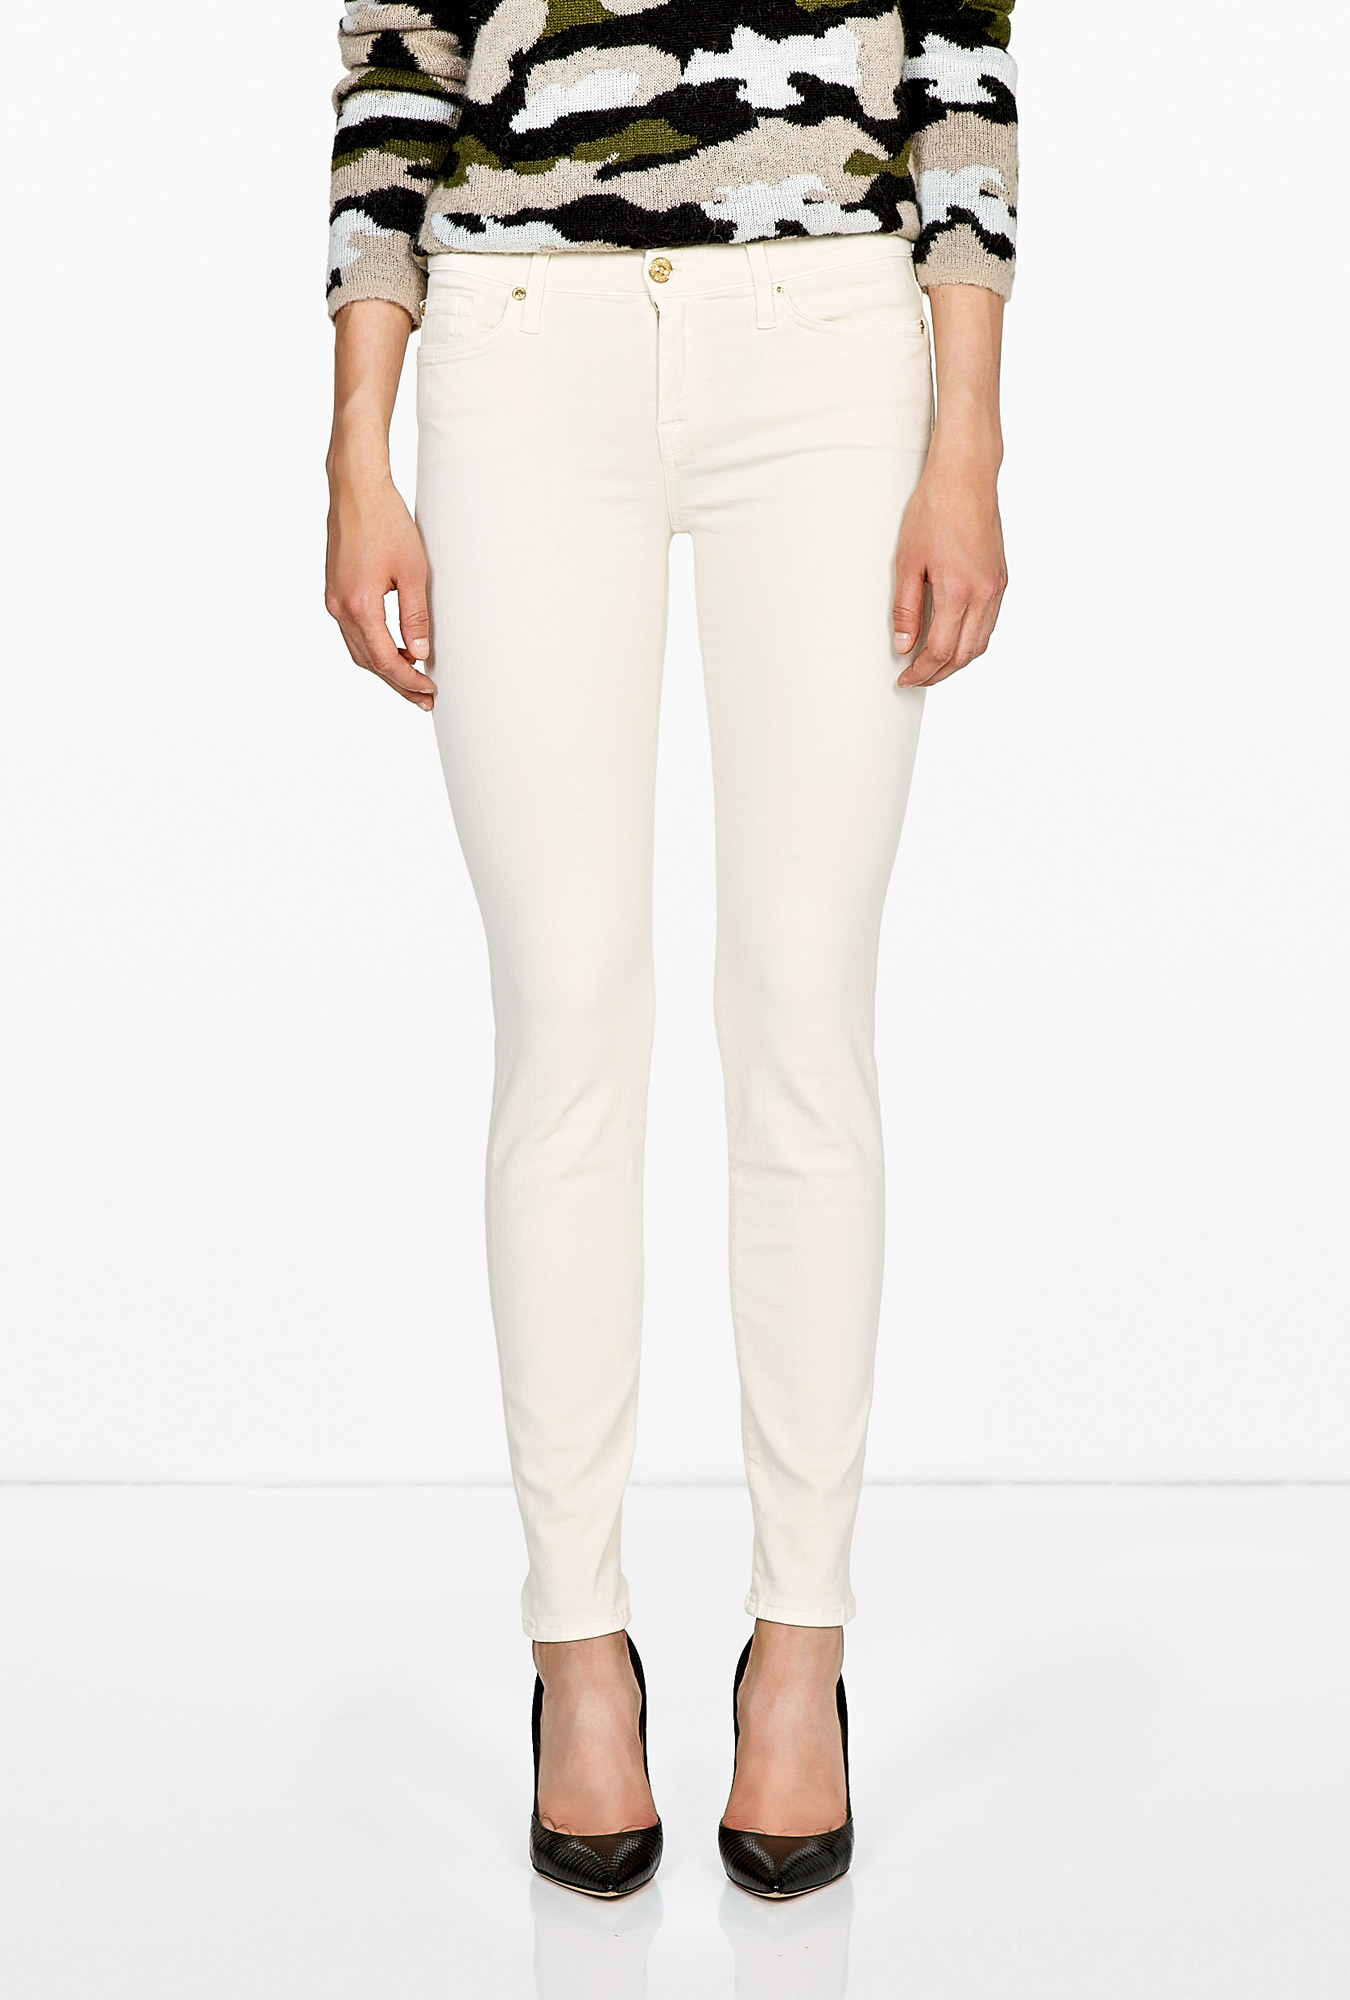 7 For All Mankind   Antique White Skinny Slim Illusion Jeans by 7 For All Mankin